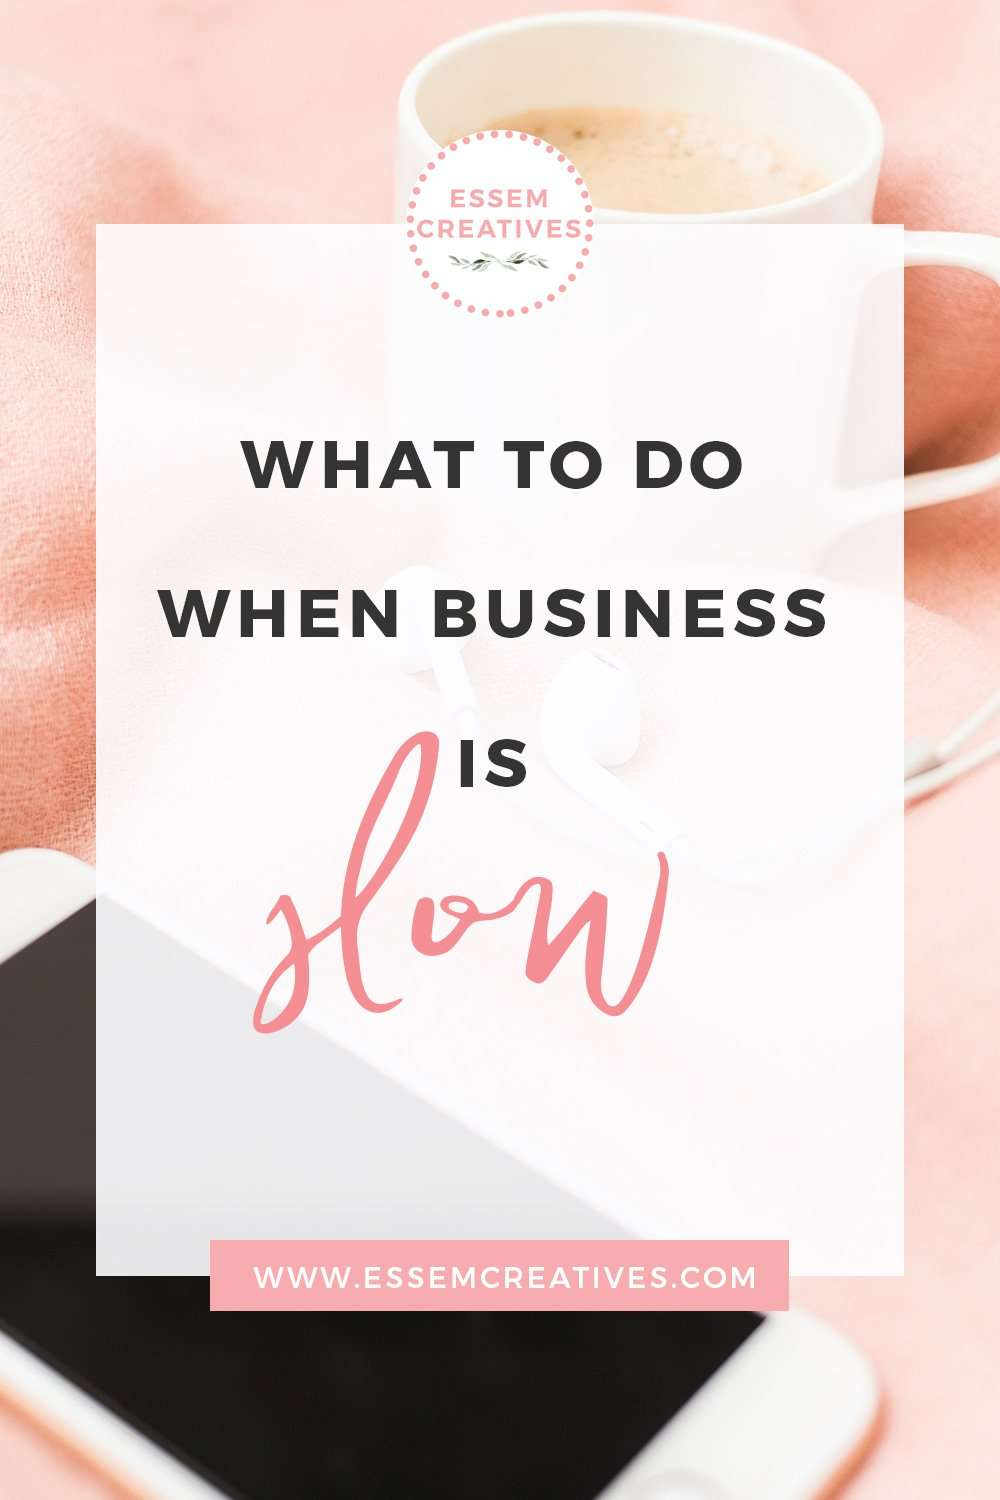 What to do when business is slow or is going down, how to increase sales and conversion, how to earn income with a small business, start a business from home, how to make profit with your business, small creative business ideas, how to refine your business niche